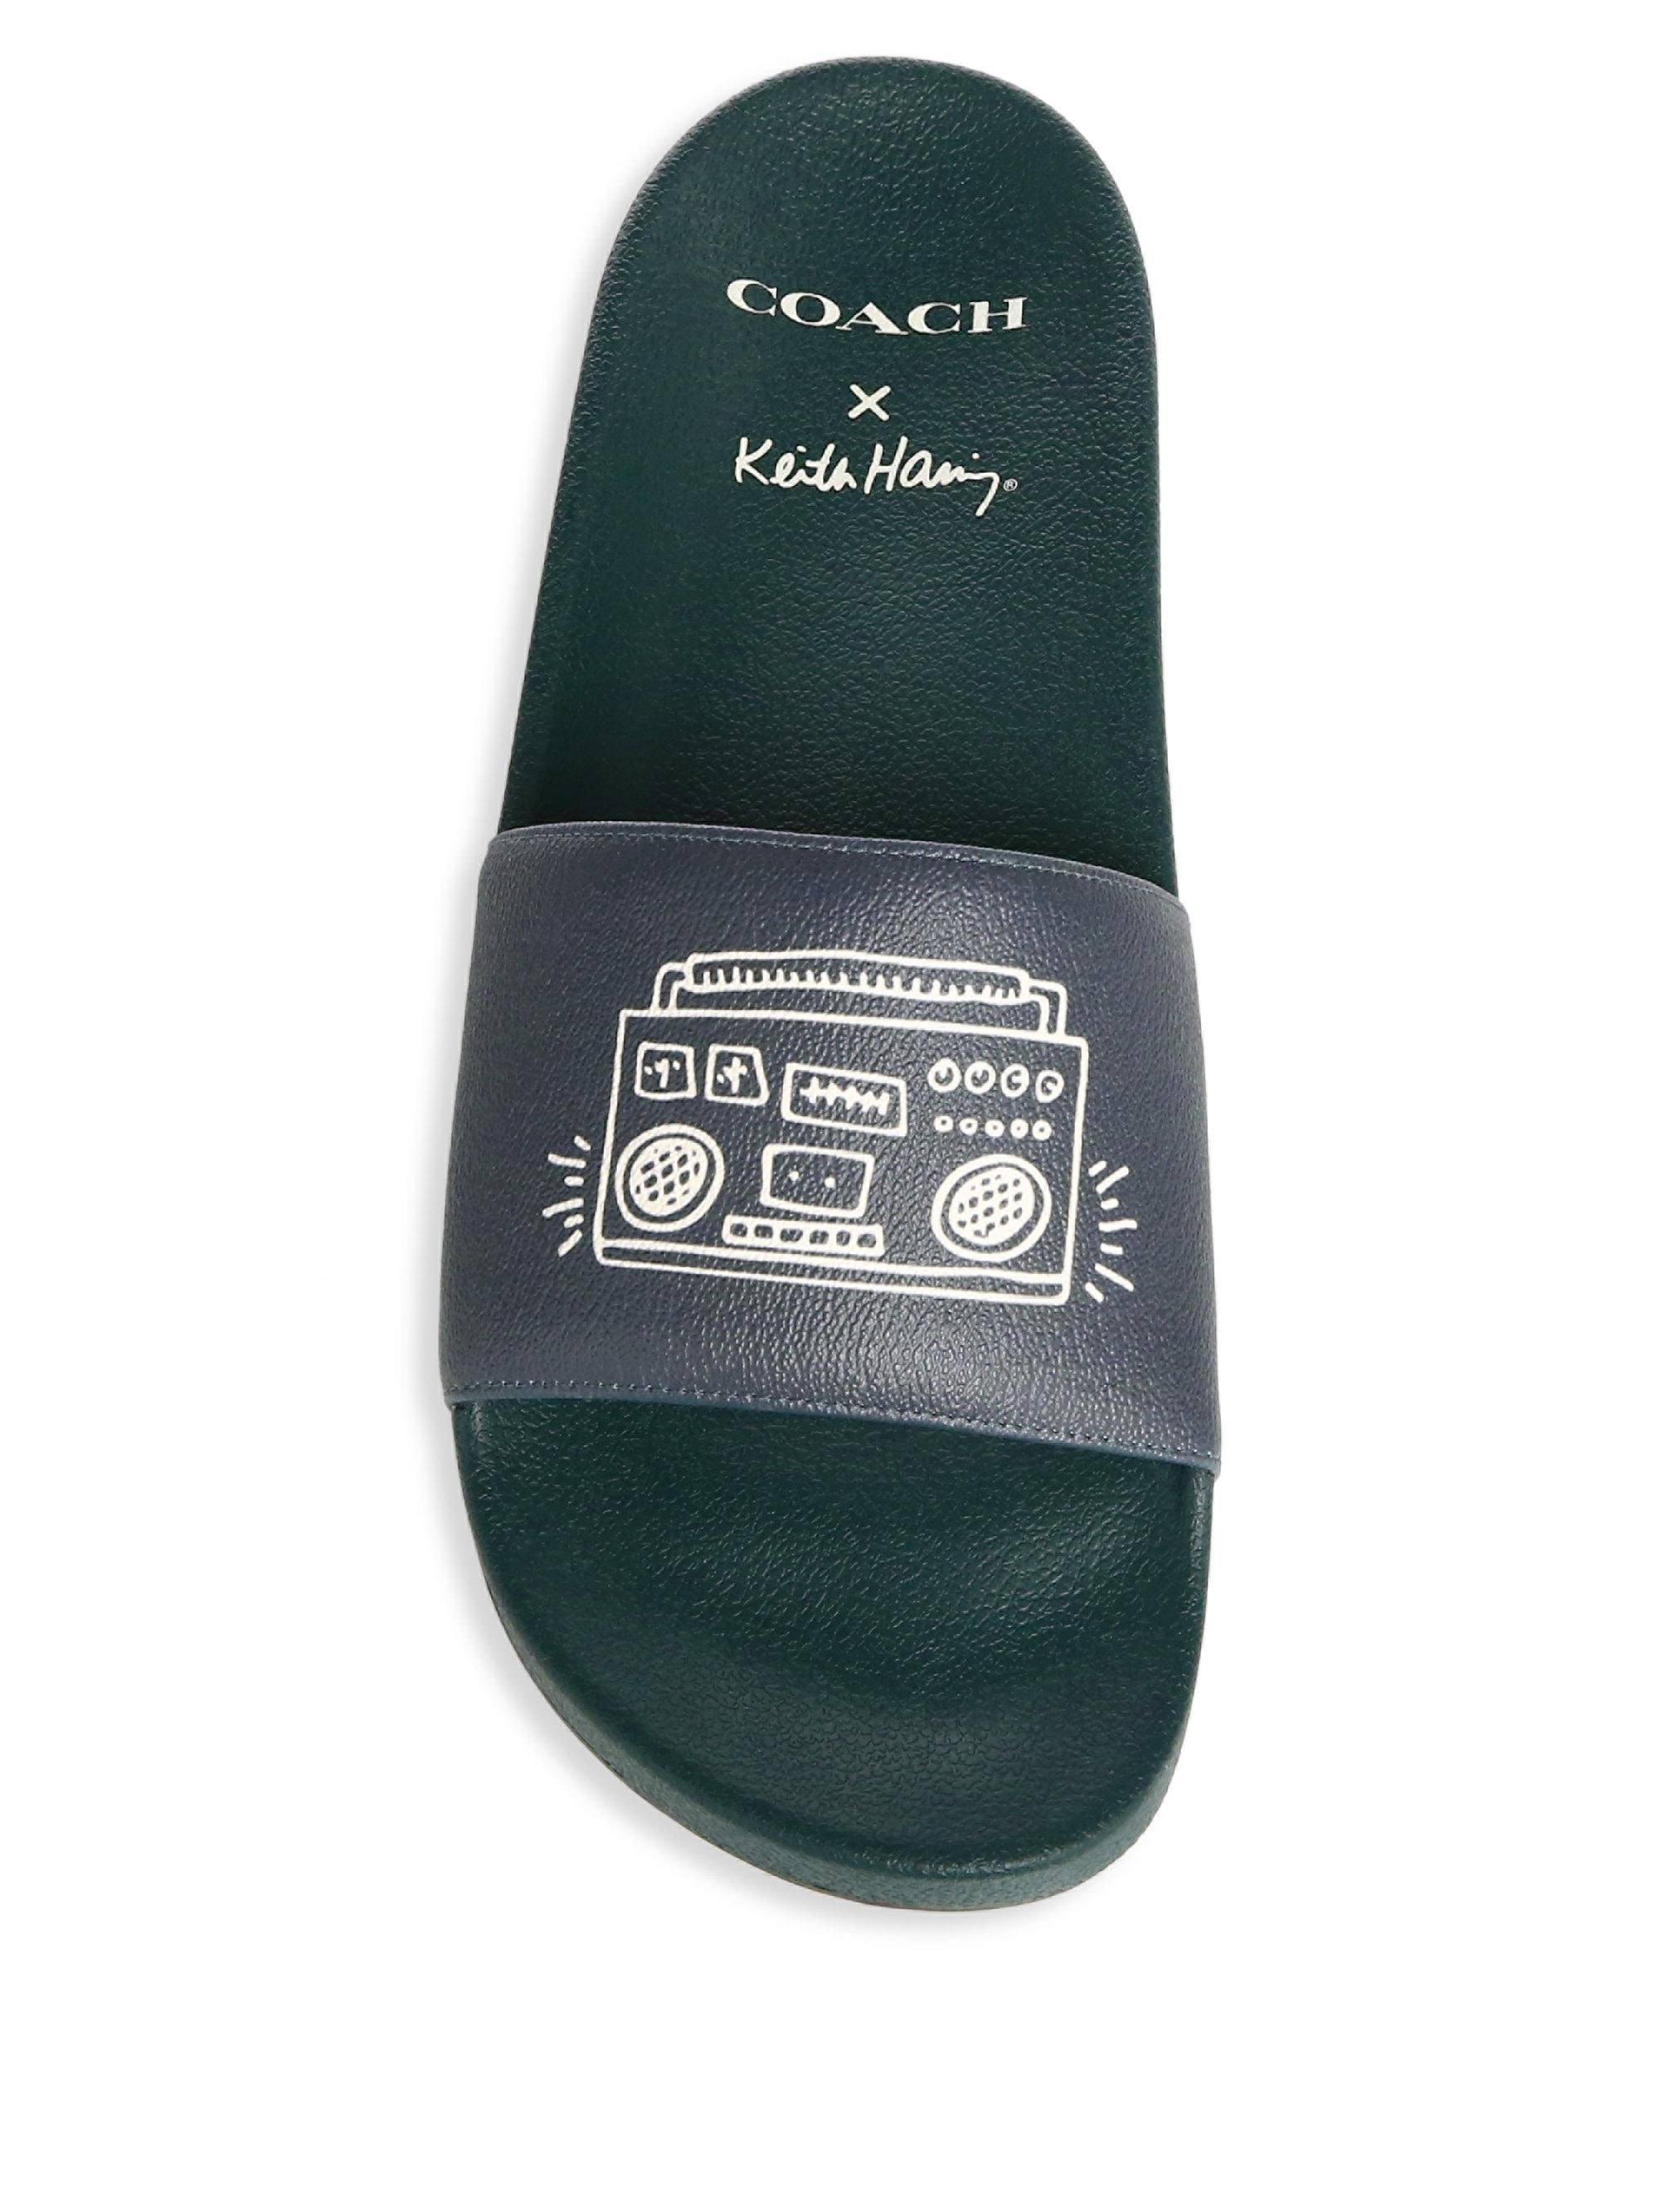 16b73389334b Lyst - COACH X Keith Haring Hawaiian Boombox Slides in Green